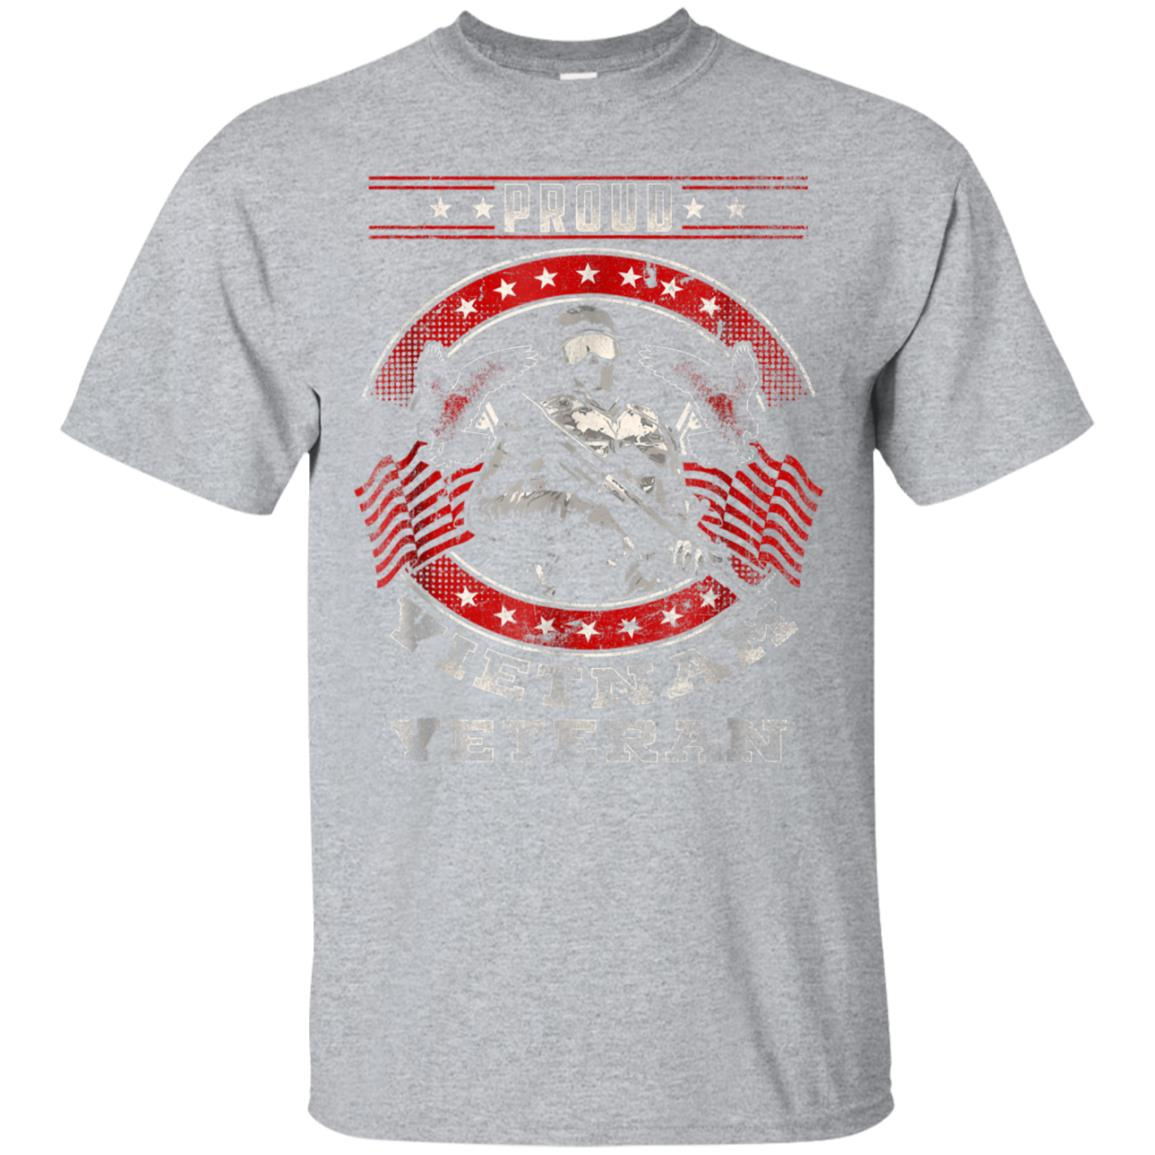 Proud Vietnam Veteran Distressed Tshirt Veteran's Day Gift 99promocode